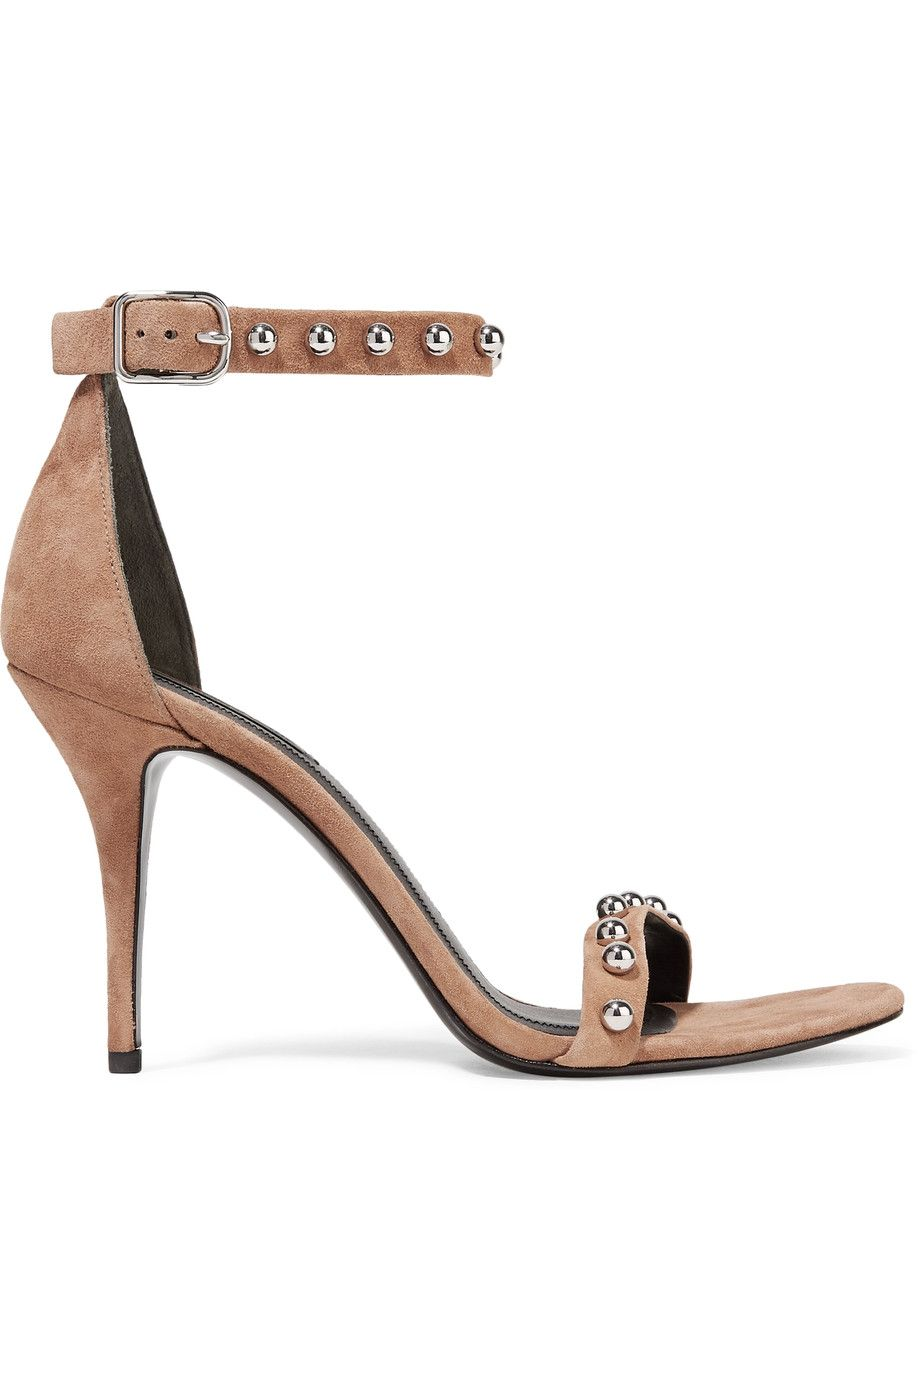 f8fe1d2bbc4 Alexander Wang Antonia studded suede sandals.